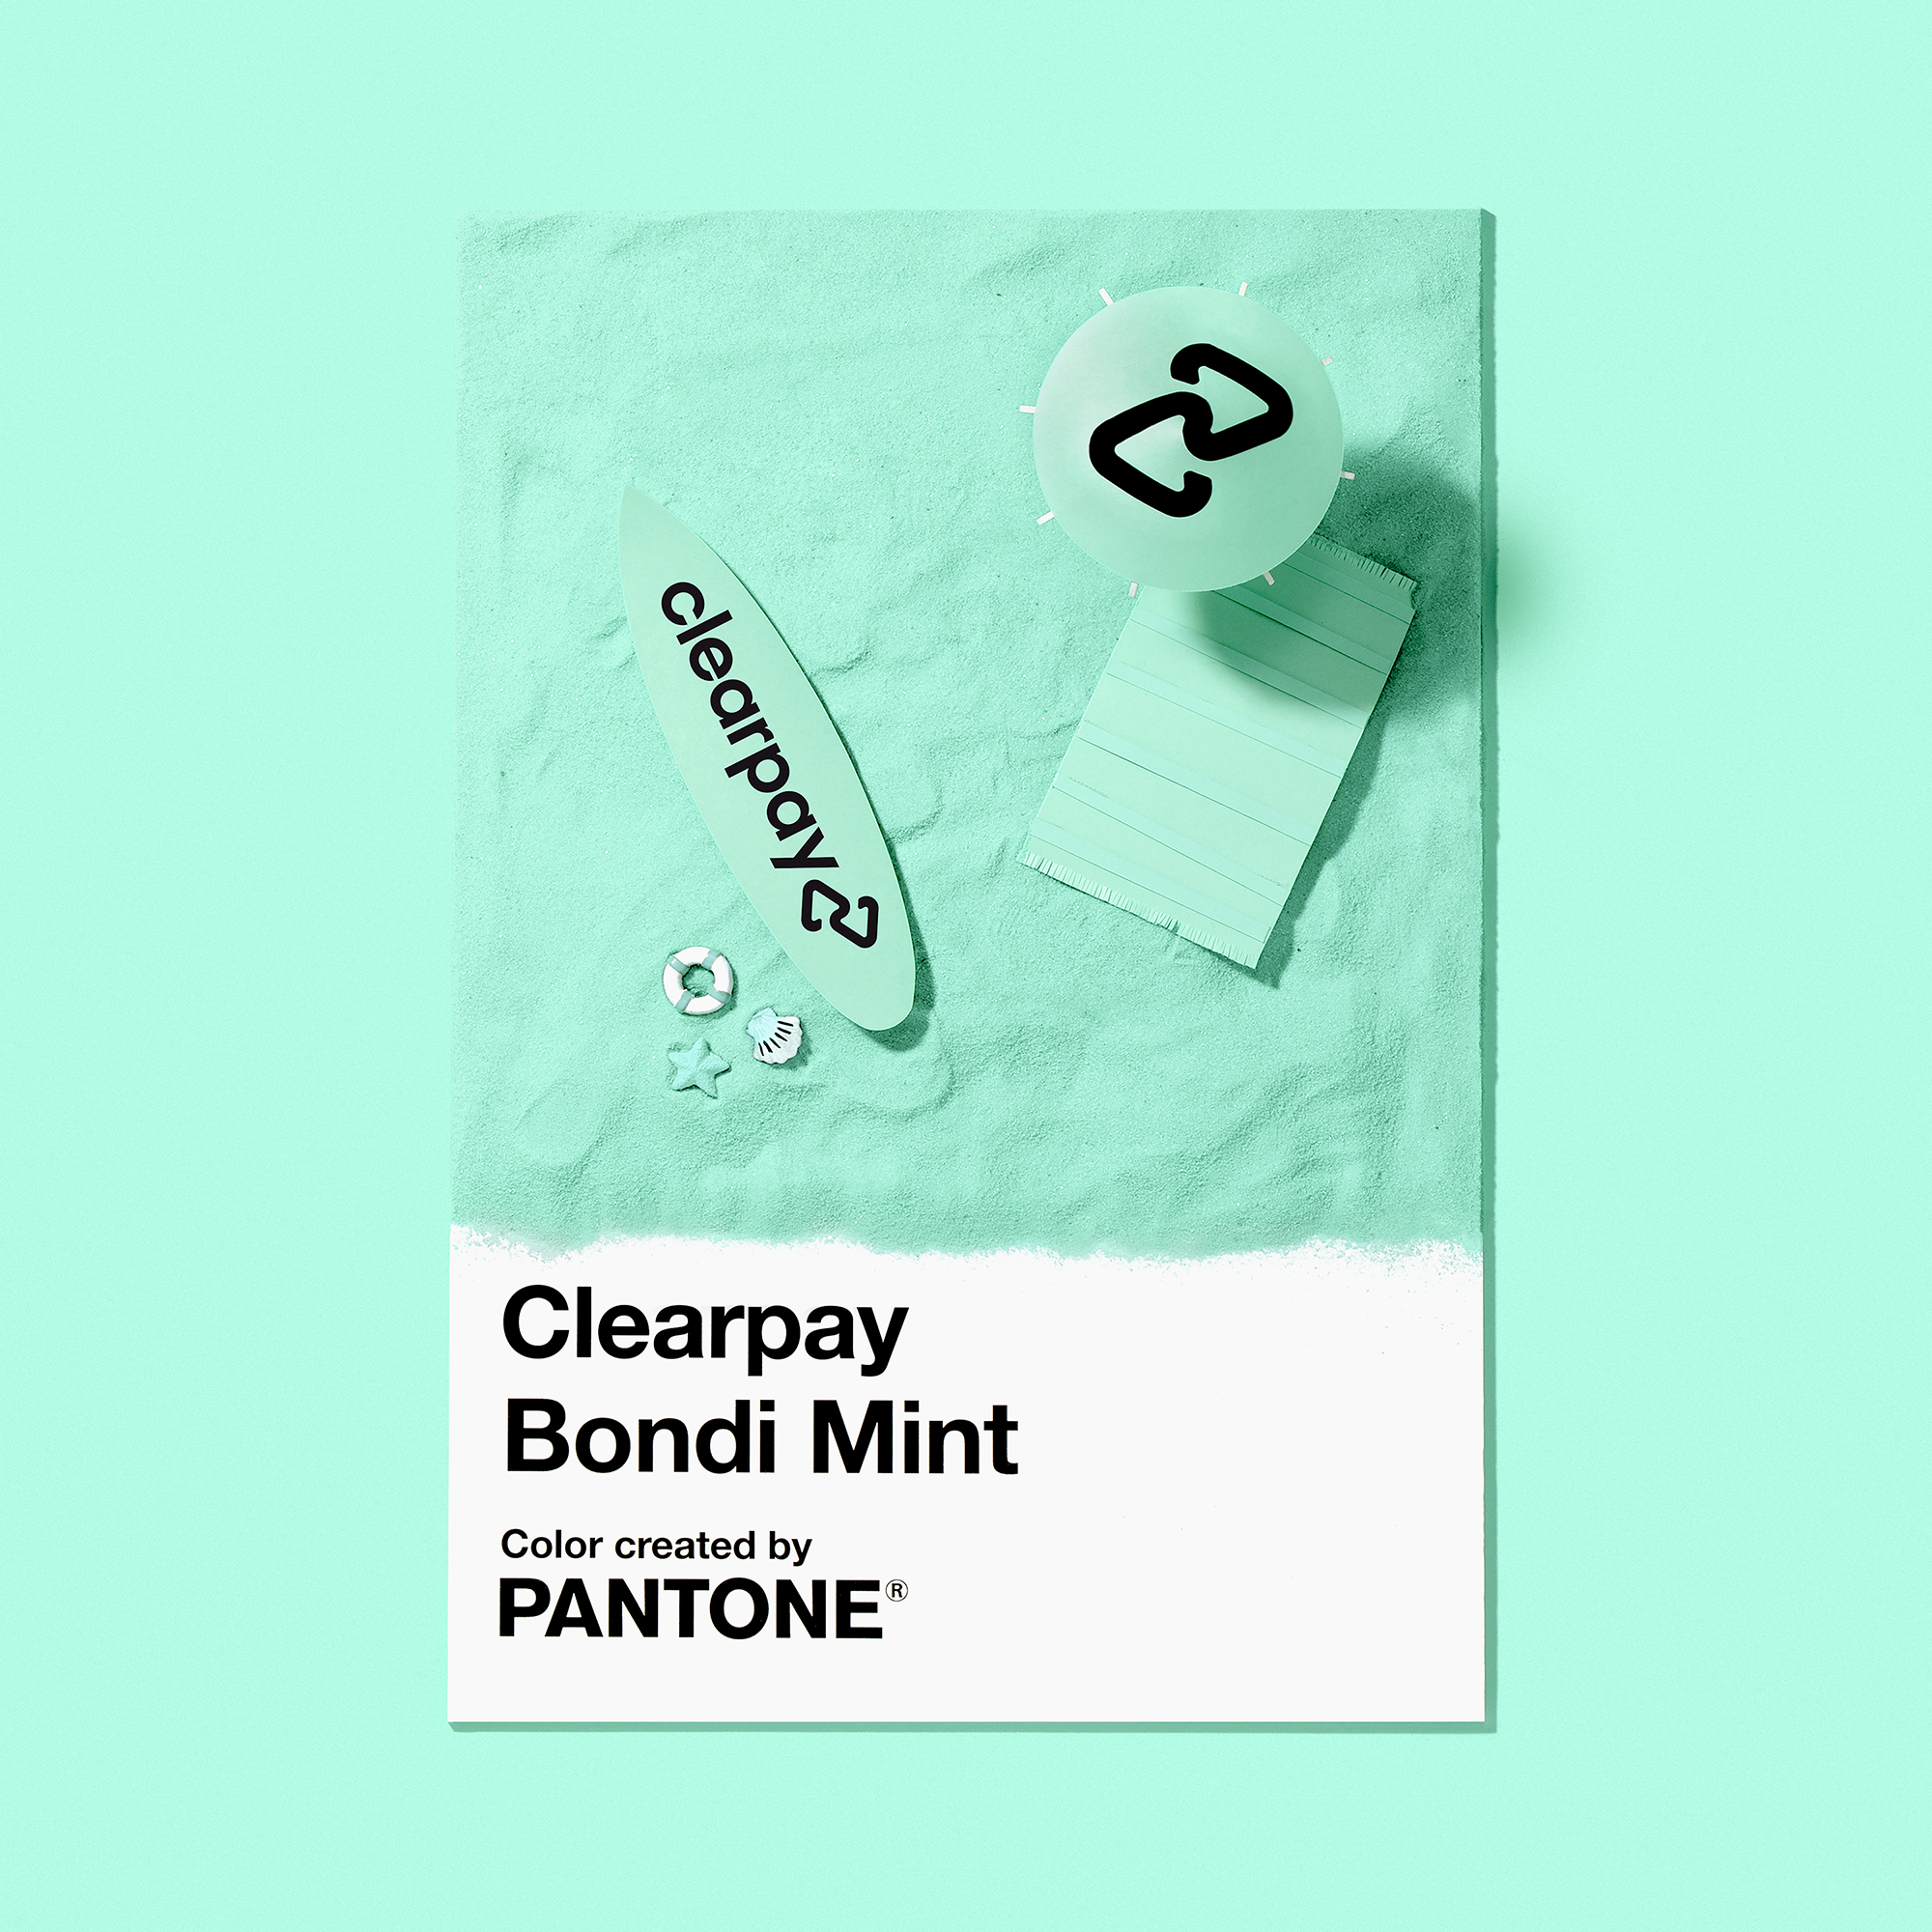 Clearpay rebranded last year and worked with Pantone on a bespoke shade of green called Bondi Mint.